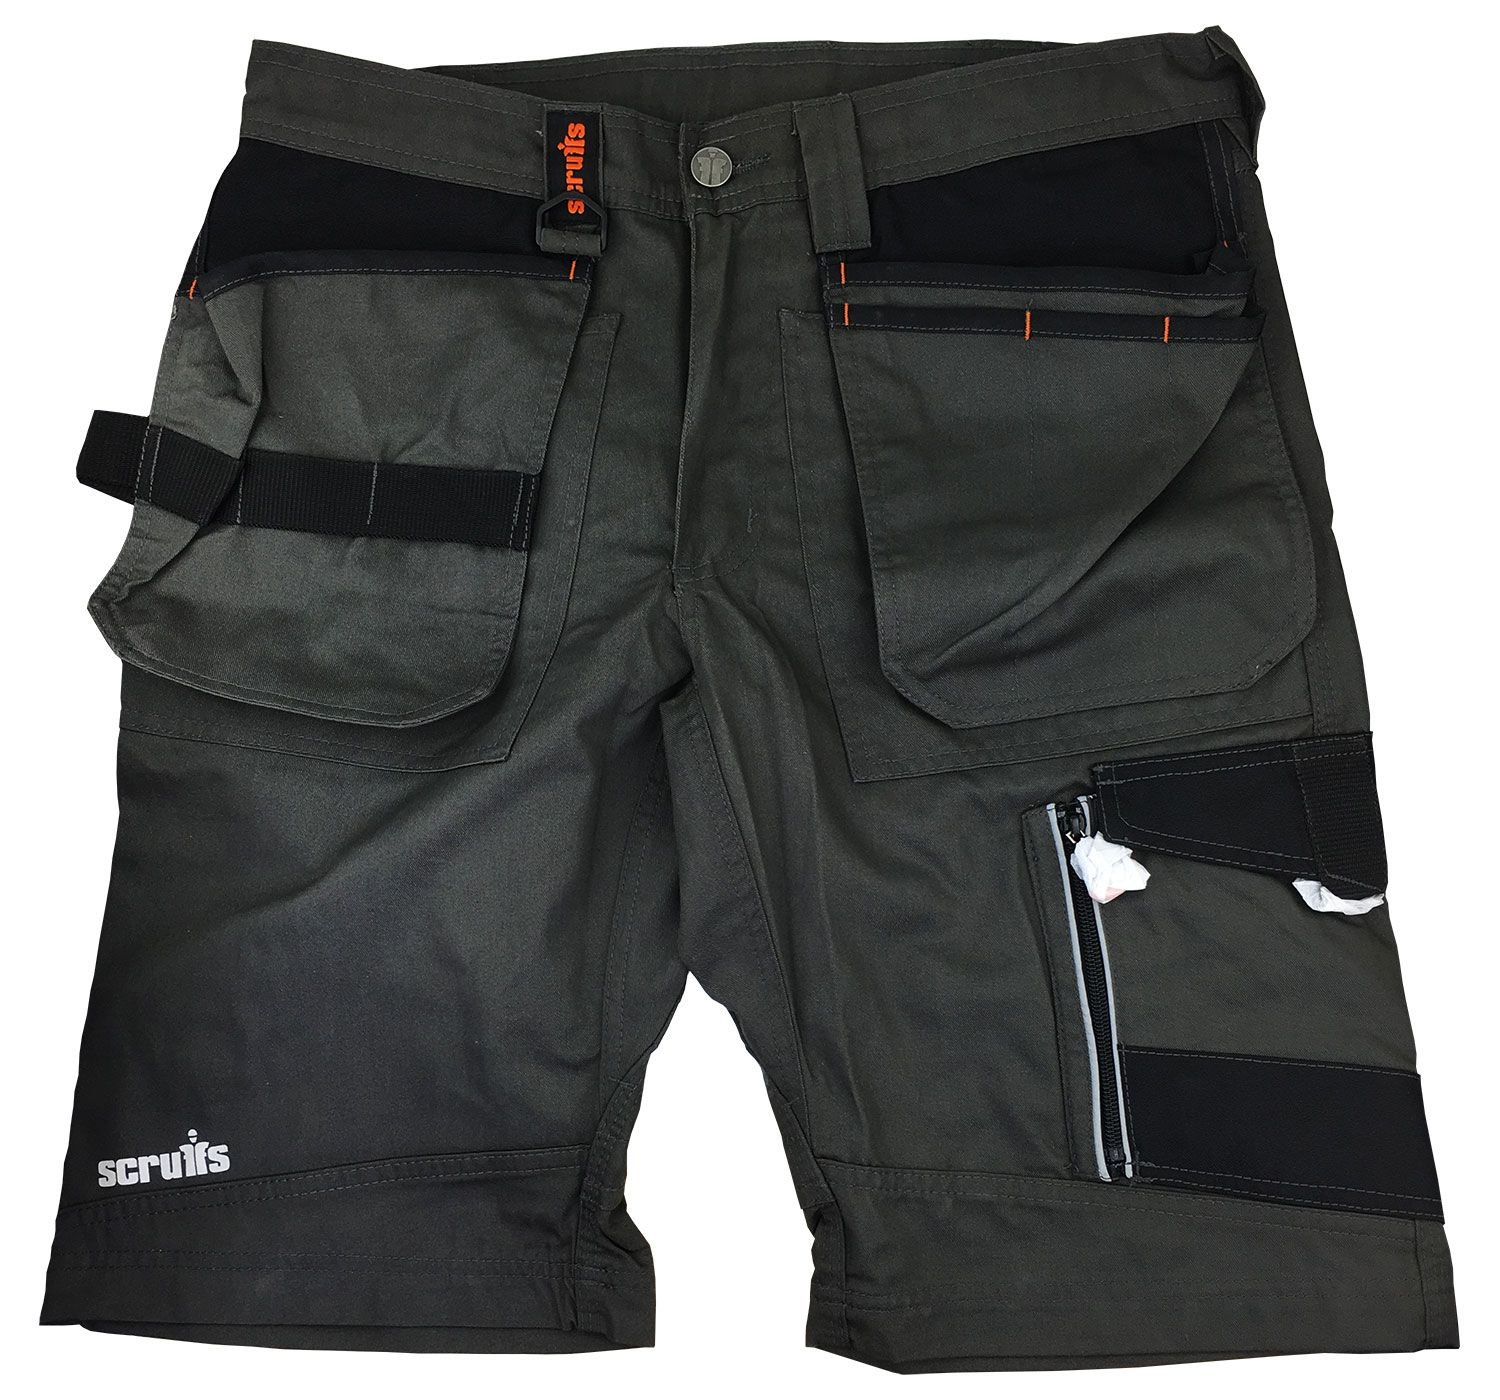 Scruffs Trade Work Shorts Slate Grey with Multiple Pockets